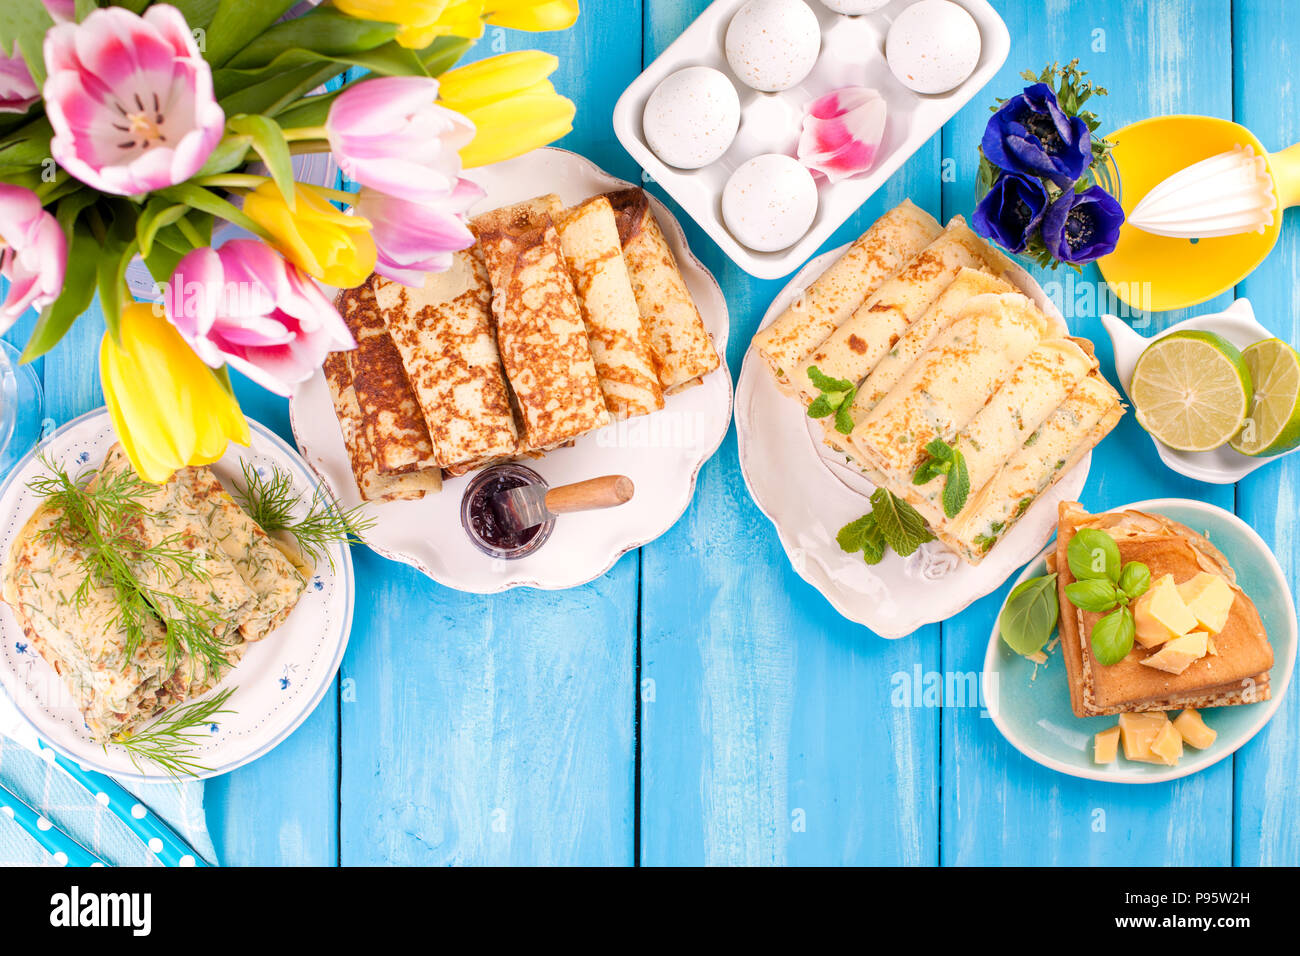 Many pancakes with different fillings and flavors. Delicious traditional food in the spring. Homemade baking. Flowers and breakfast. View from above. Copy space - Stock Image